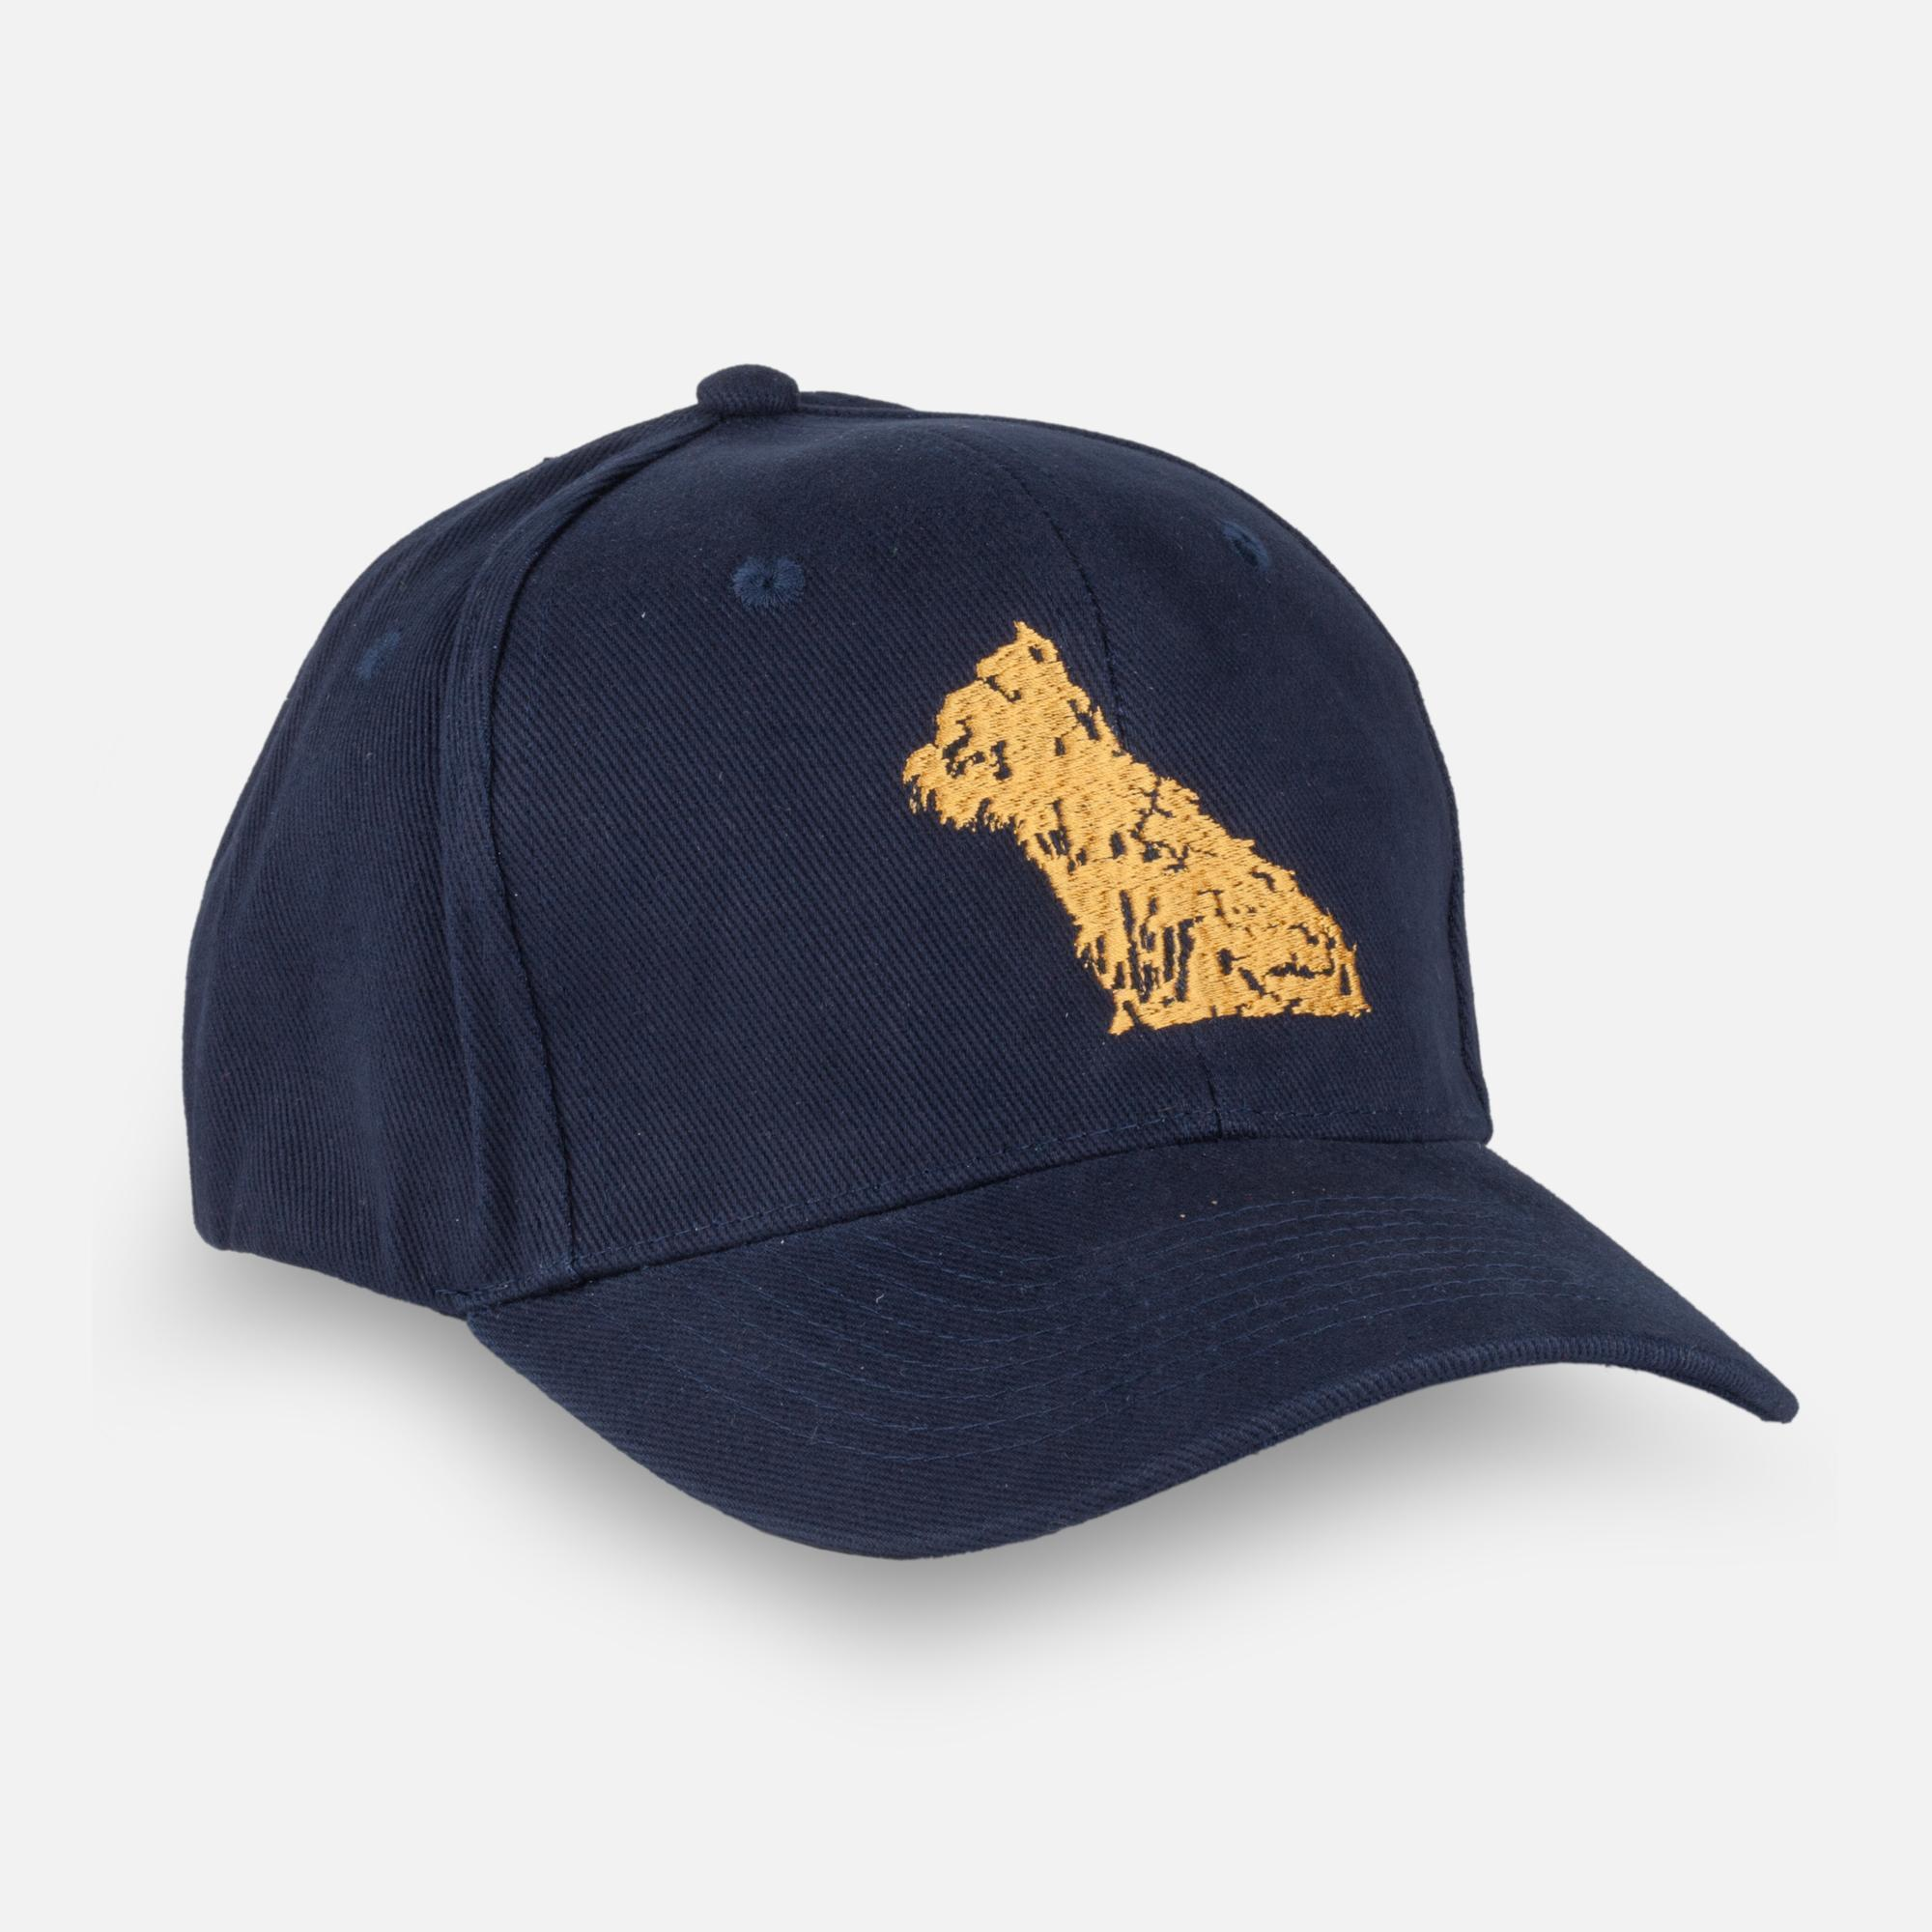 Gorra adulto boceto Puppy